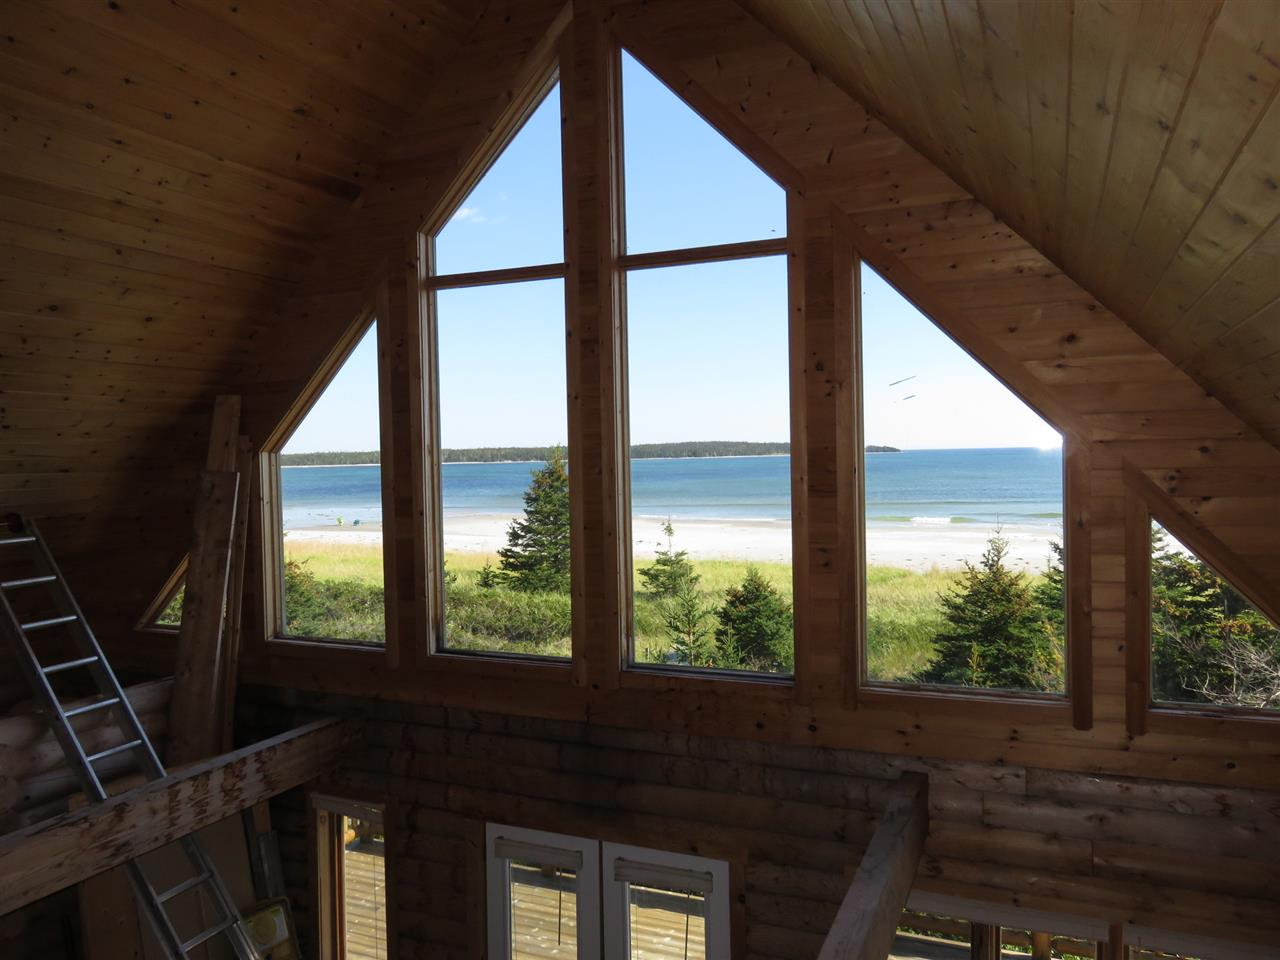 Photo 27: Photos: 198 SEASIDE Drive in Louis Head: 407-Shelburne County Residential for sale (South Shore)  : MLS® # 4686576